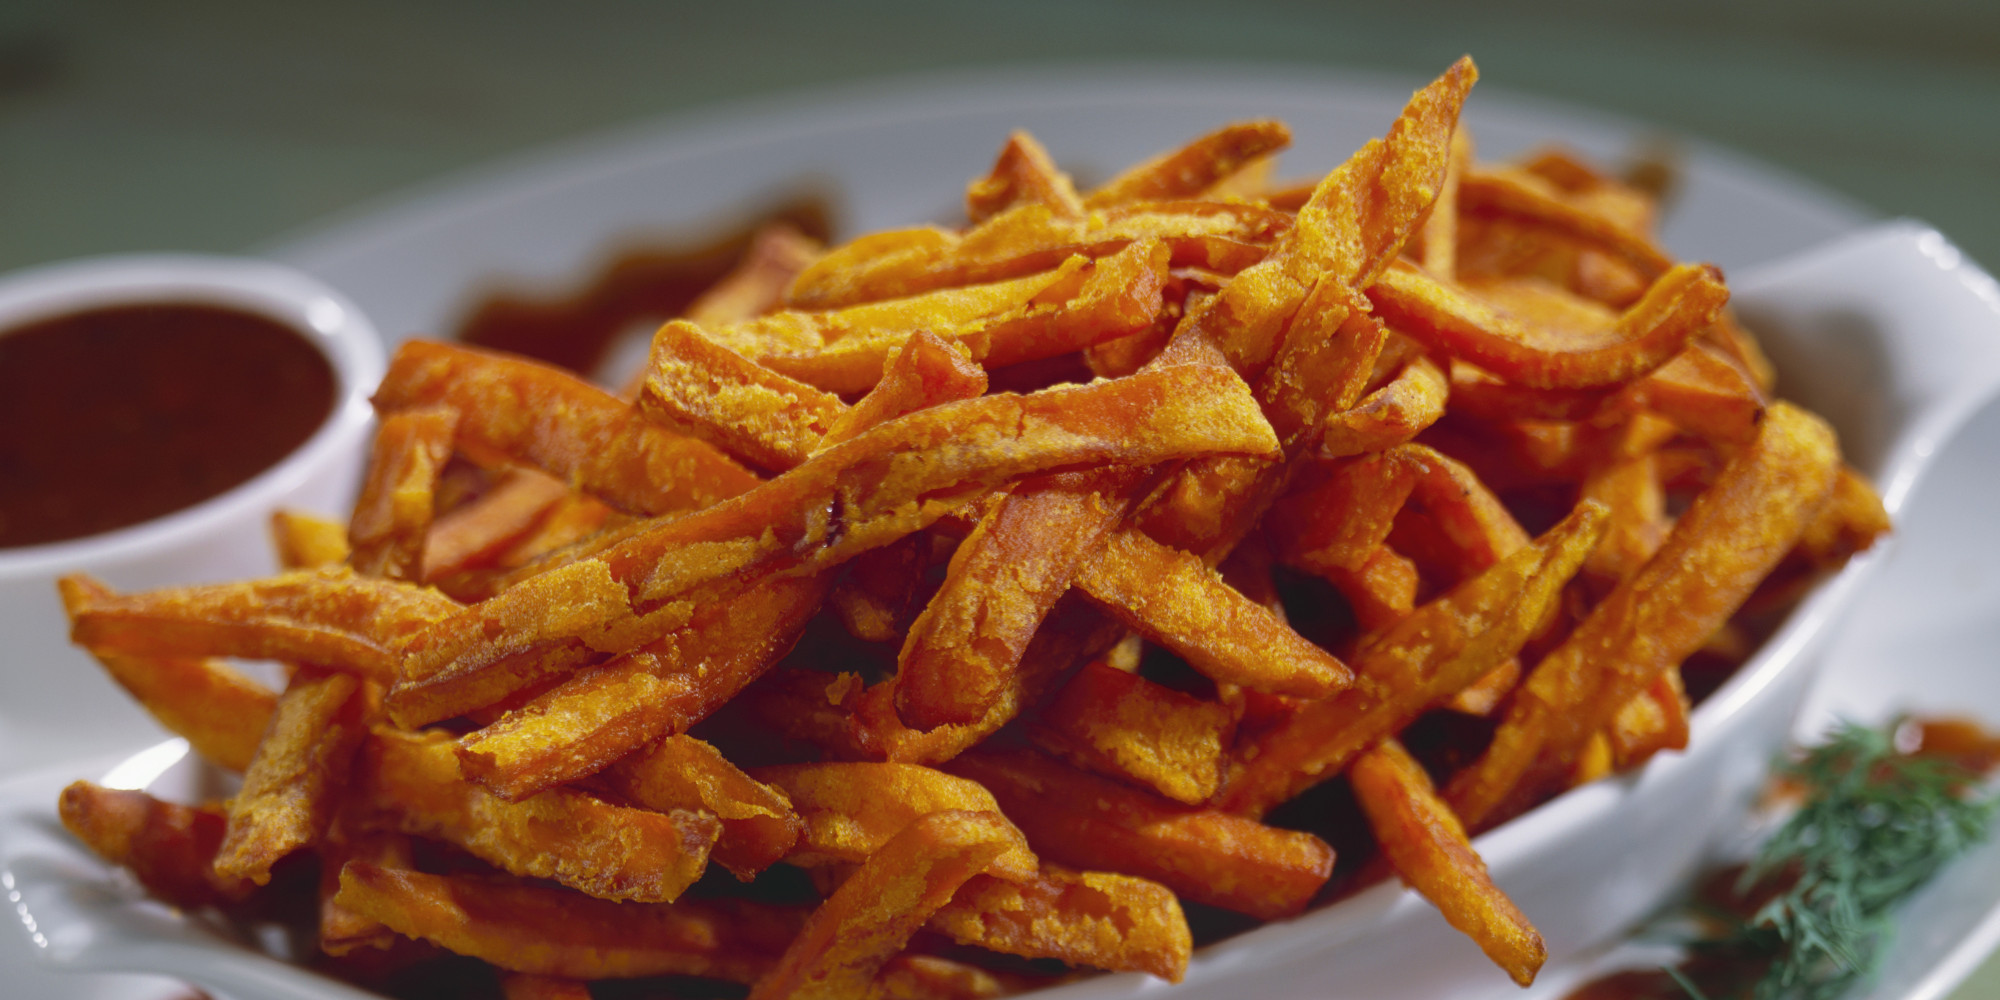 SWEET-POTATO-FRIES-facebook.jpg